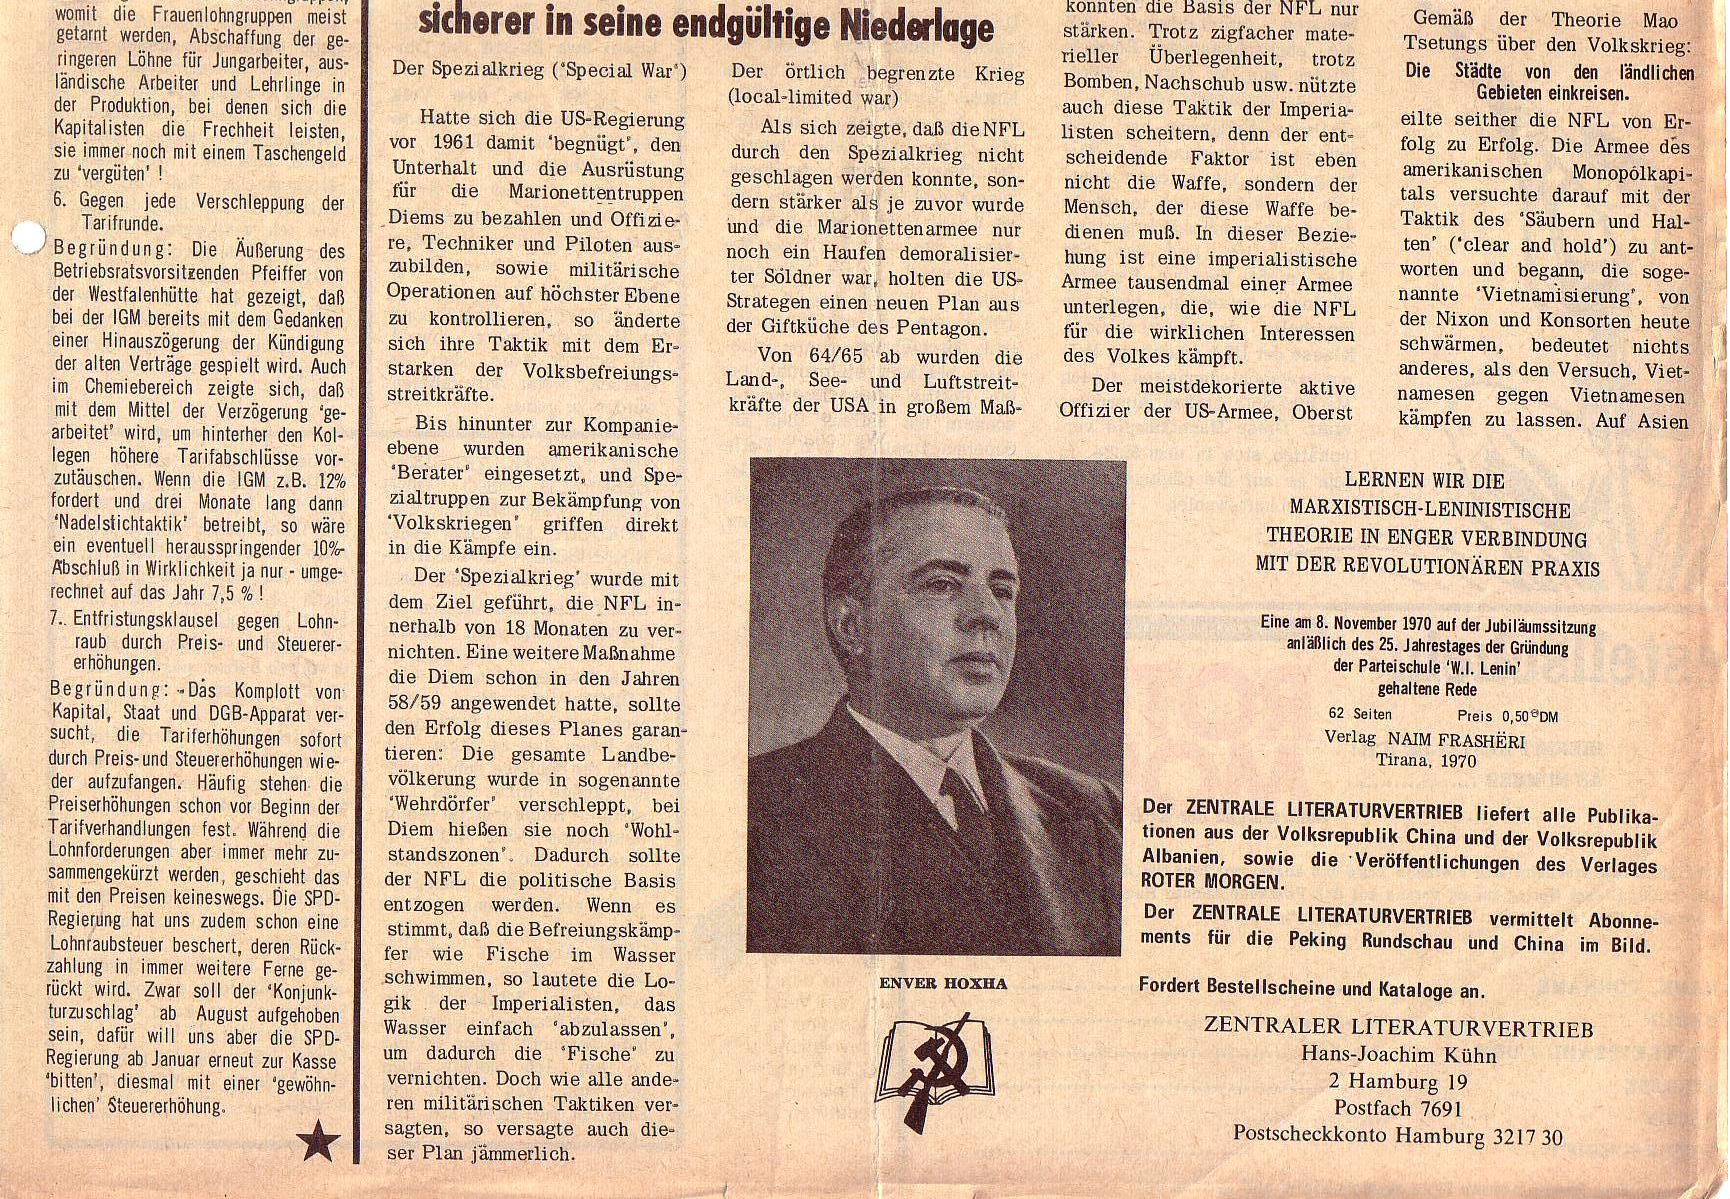 Roter Morgen, 5. Jg., August 1971, Nr. 8, Seite 7b